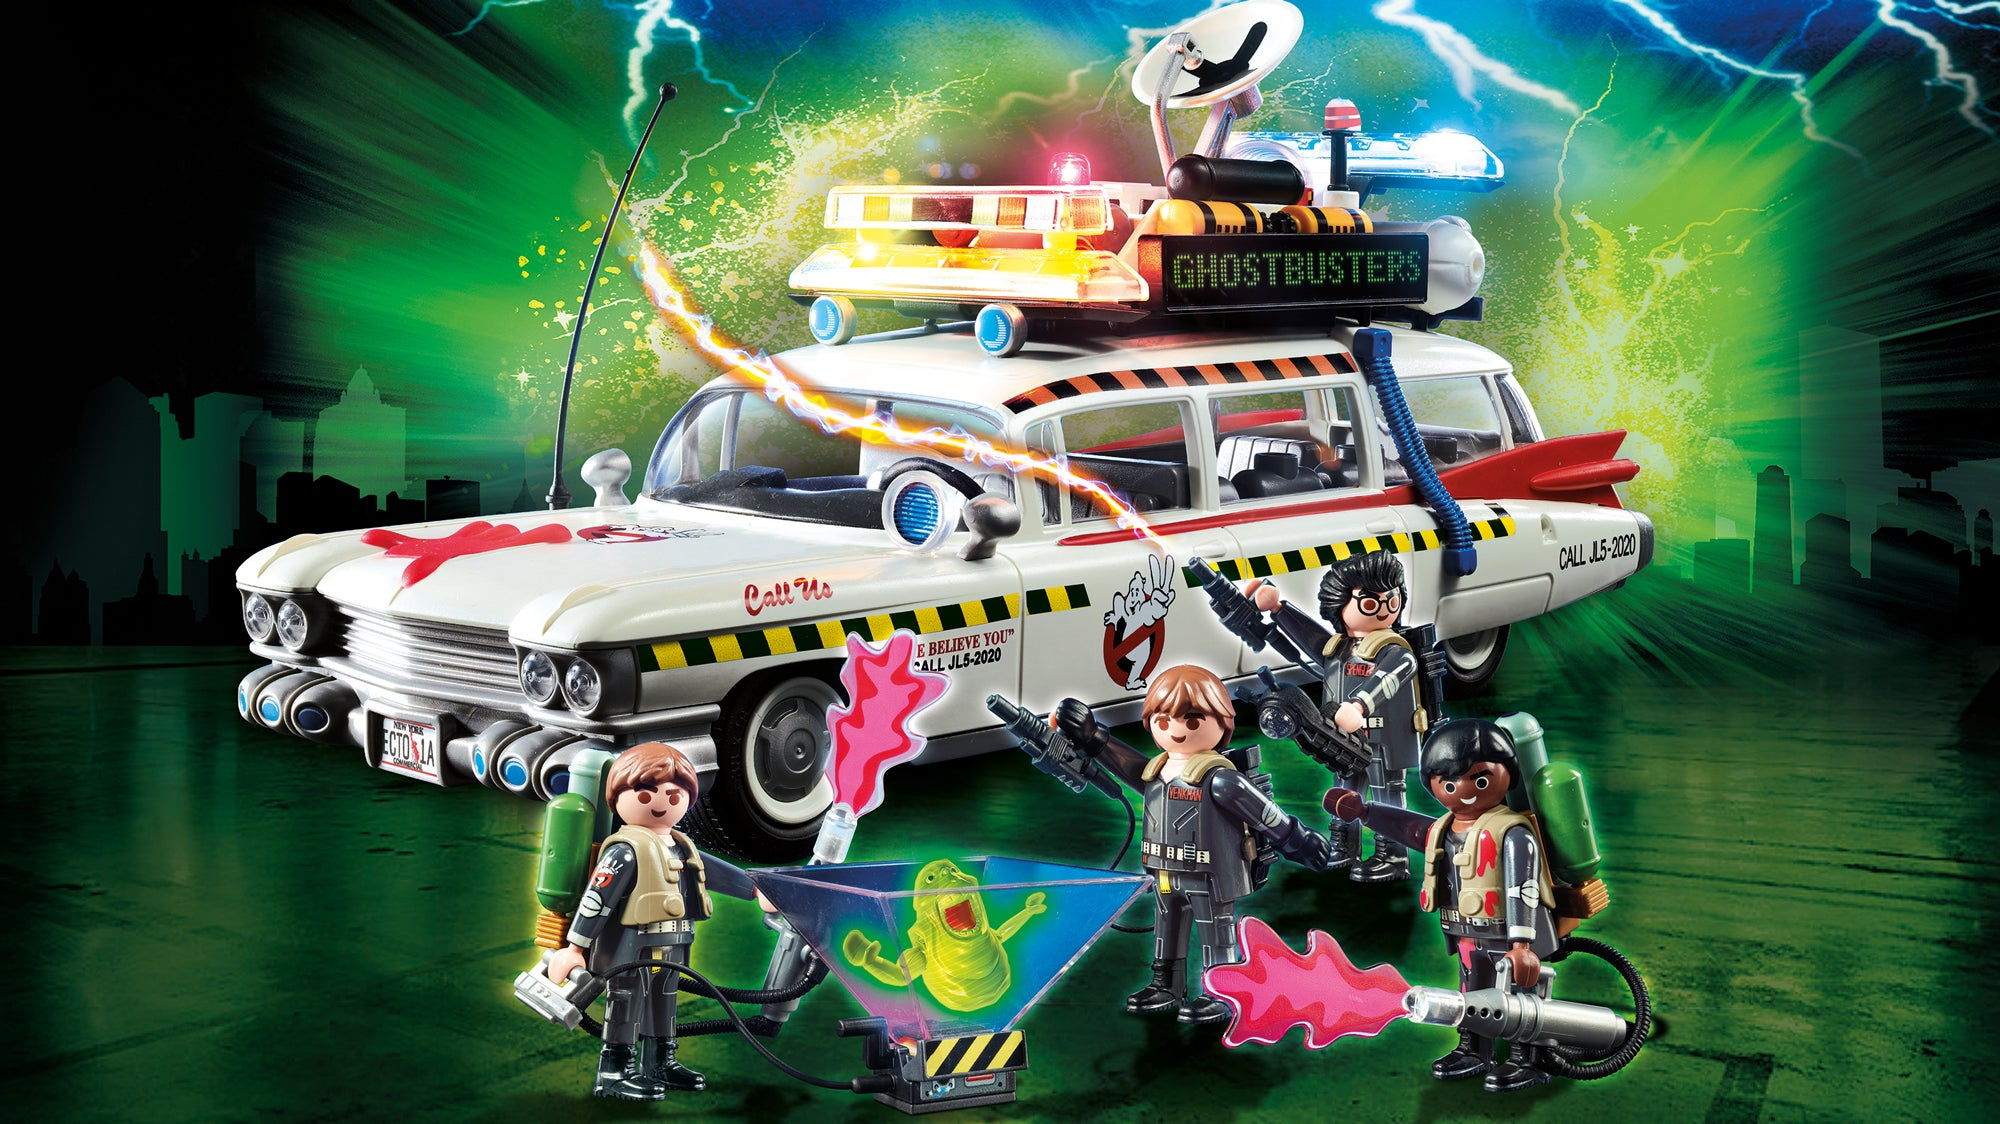 Playmobil's Ghostbusters 2 Toys Actually Make The Disappointing Sequel A Little Better